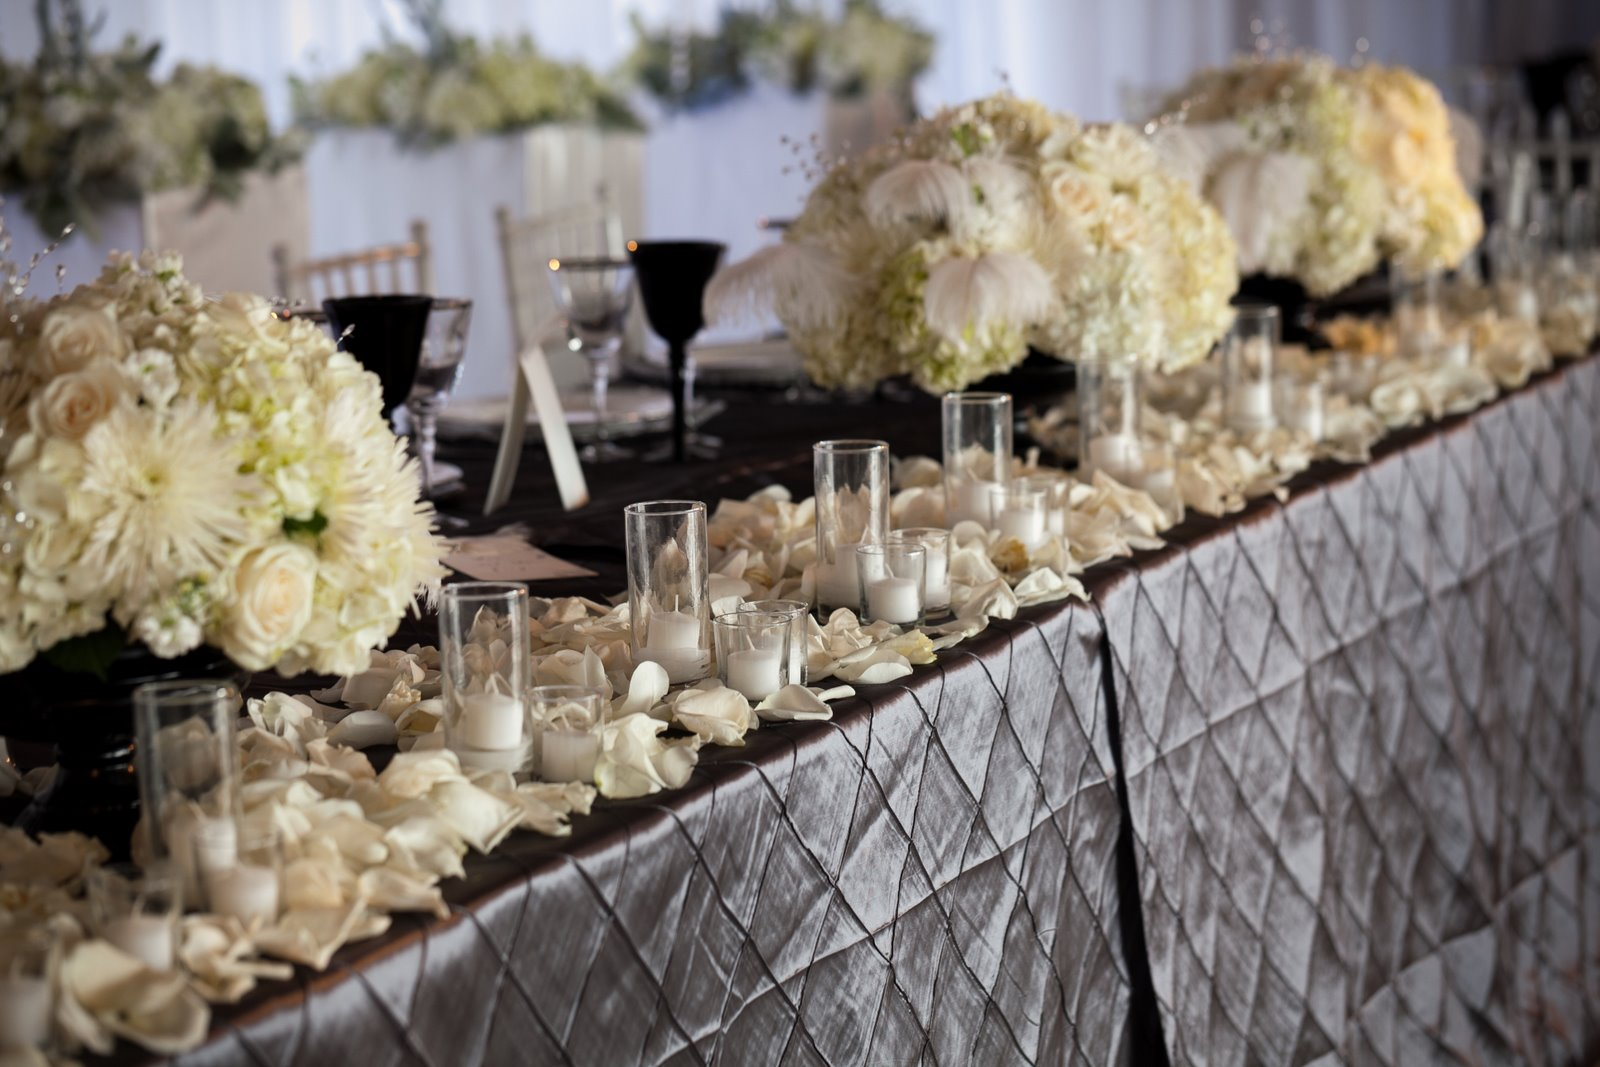 Covers and chivari chairs charcoal grey pintuck amp white florals